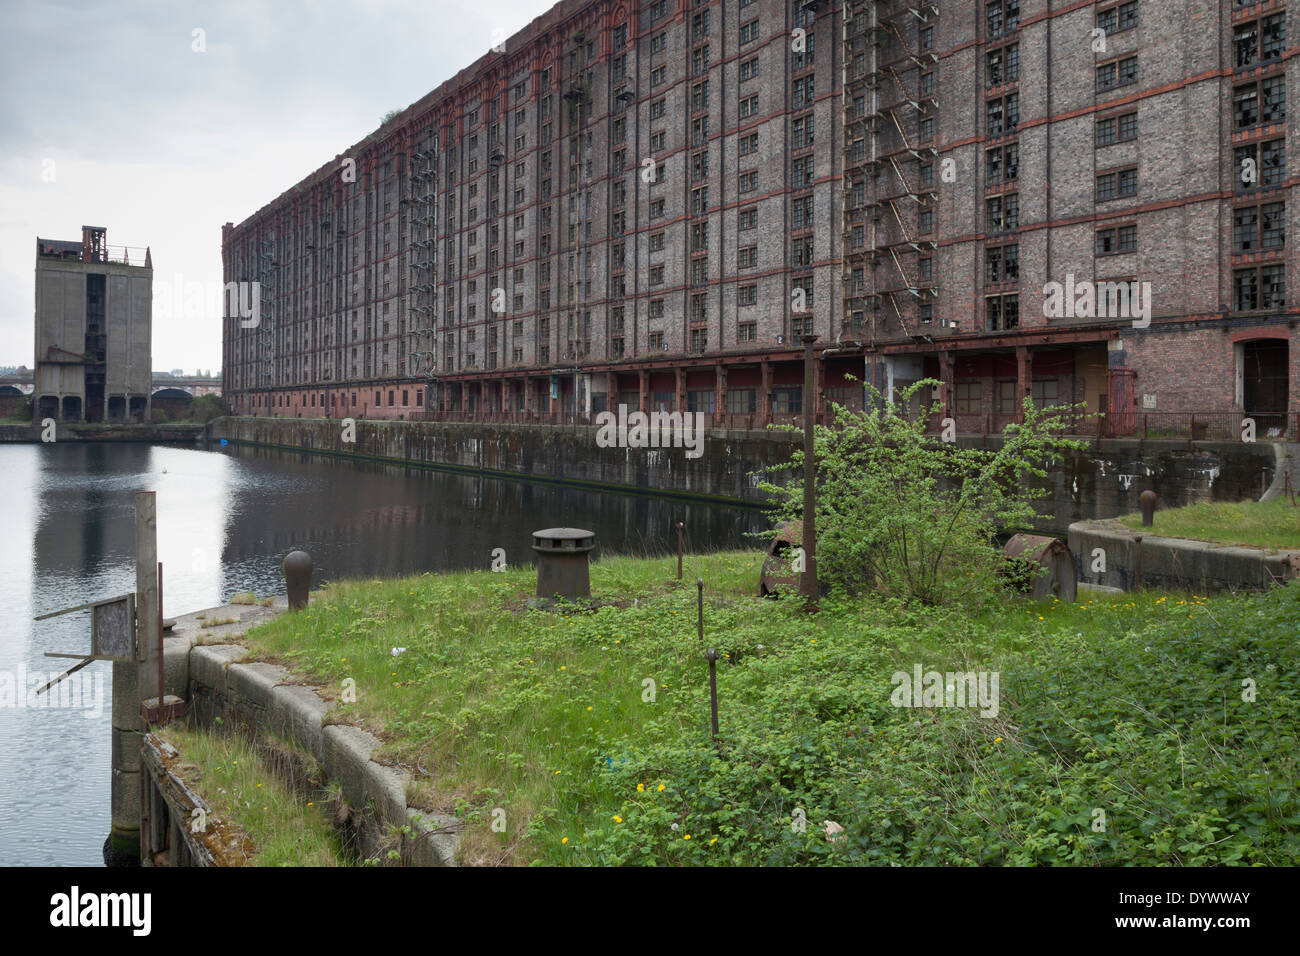 The Stanley Dock Tobacco Warehouse, built in 1901, is the world's largest brick warehouse and is grade II listed. Stock Photo